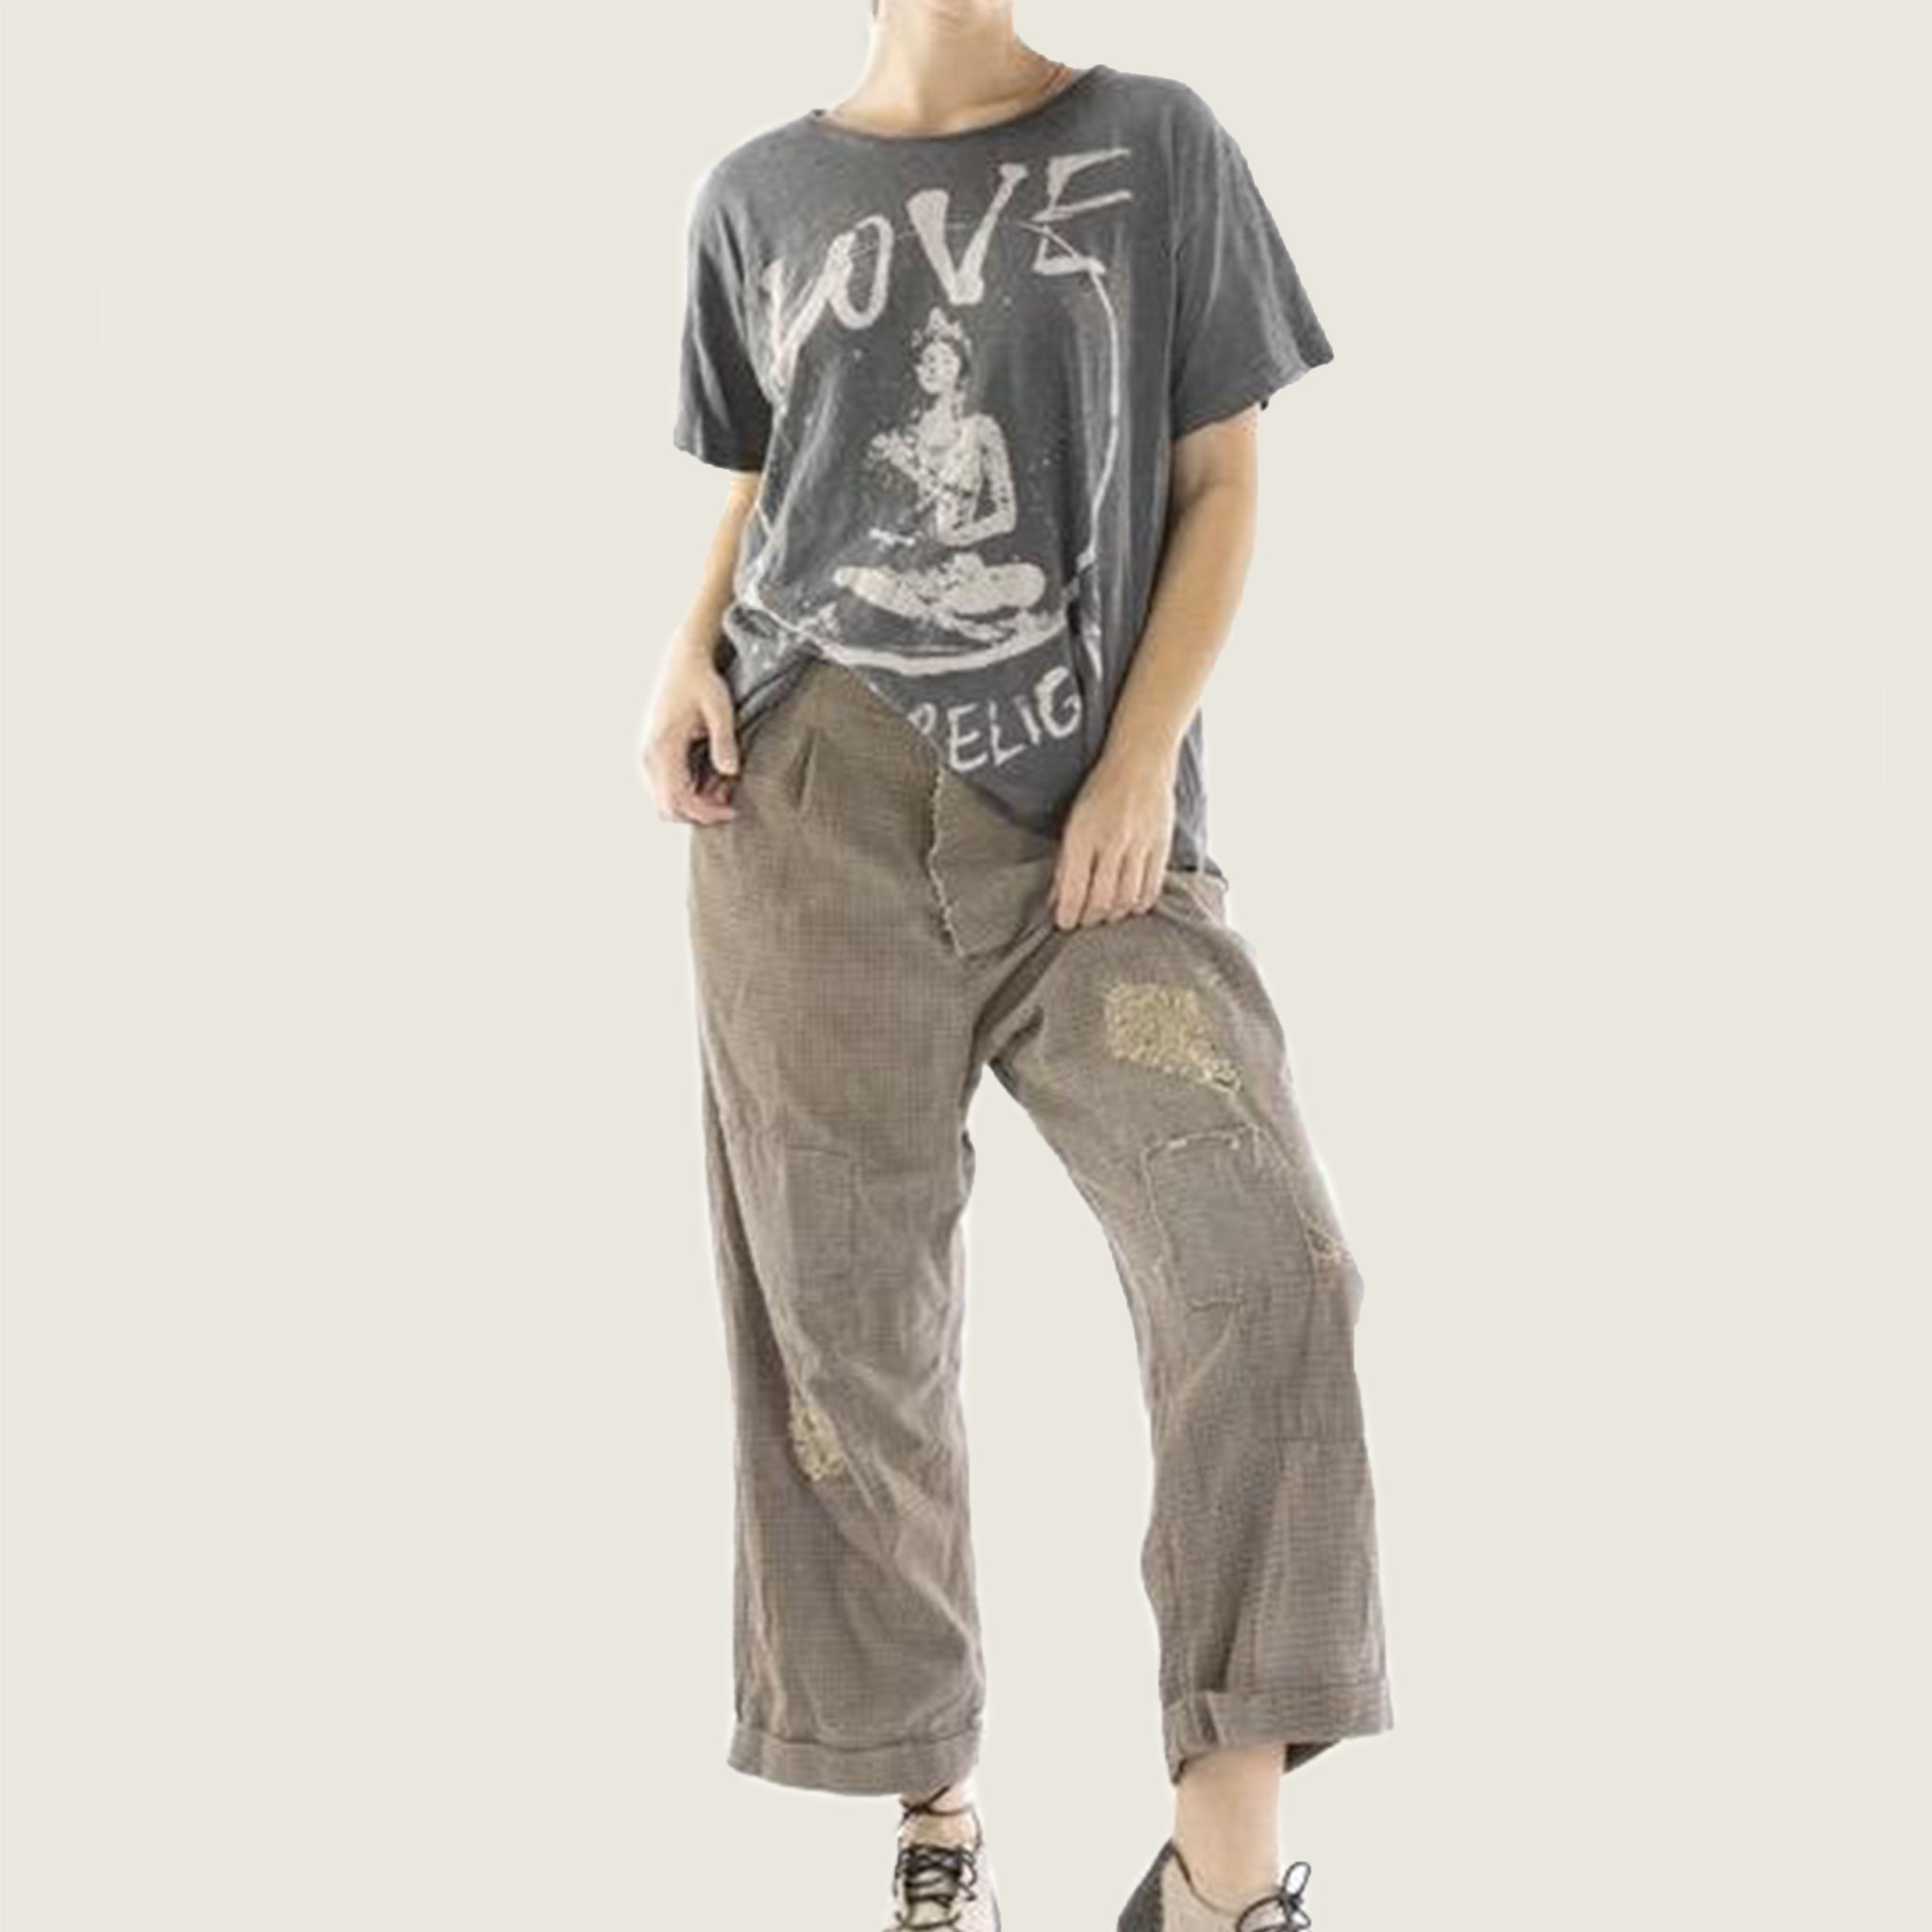 Pants 215 Barni - Blackbird General Store